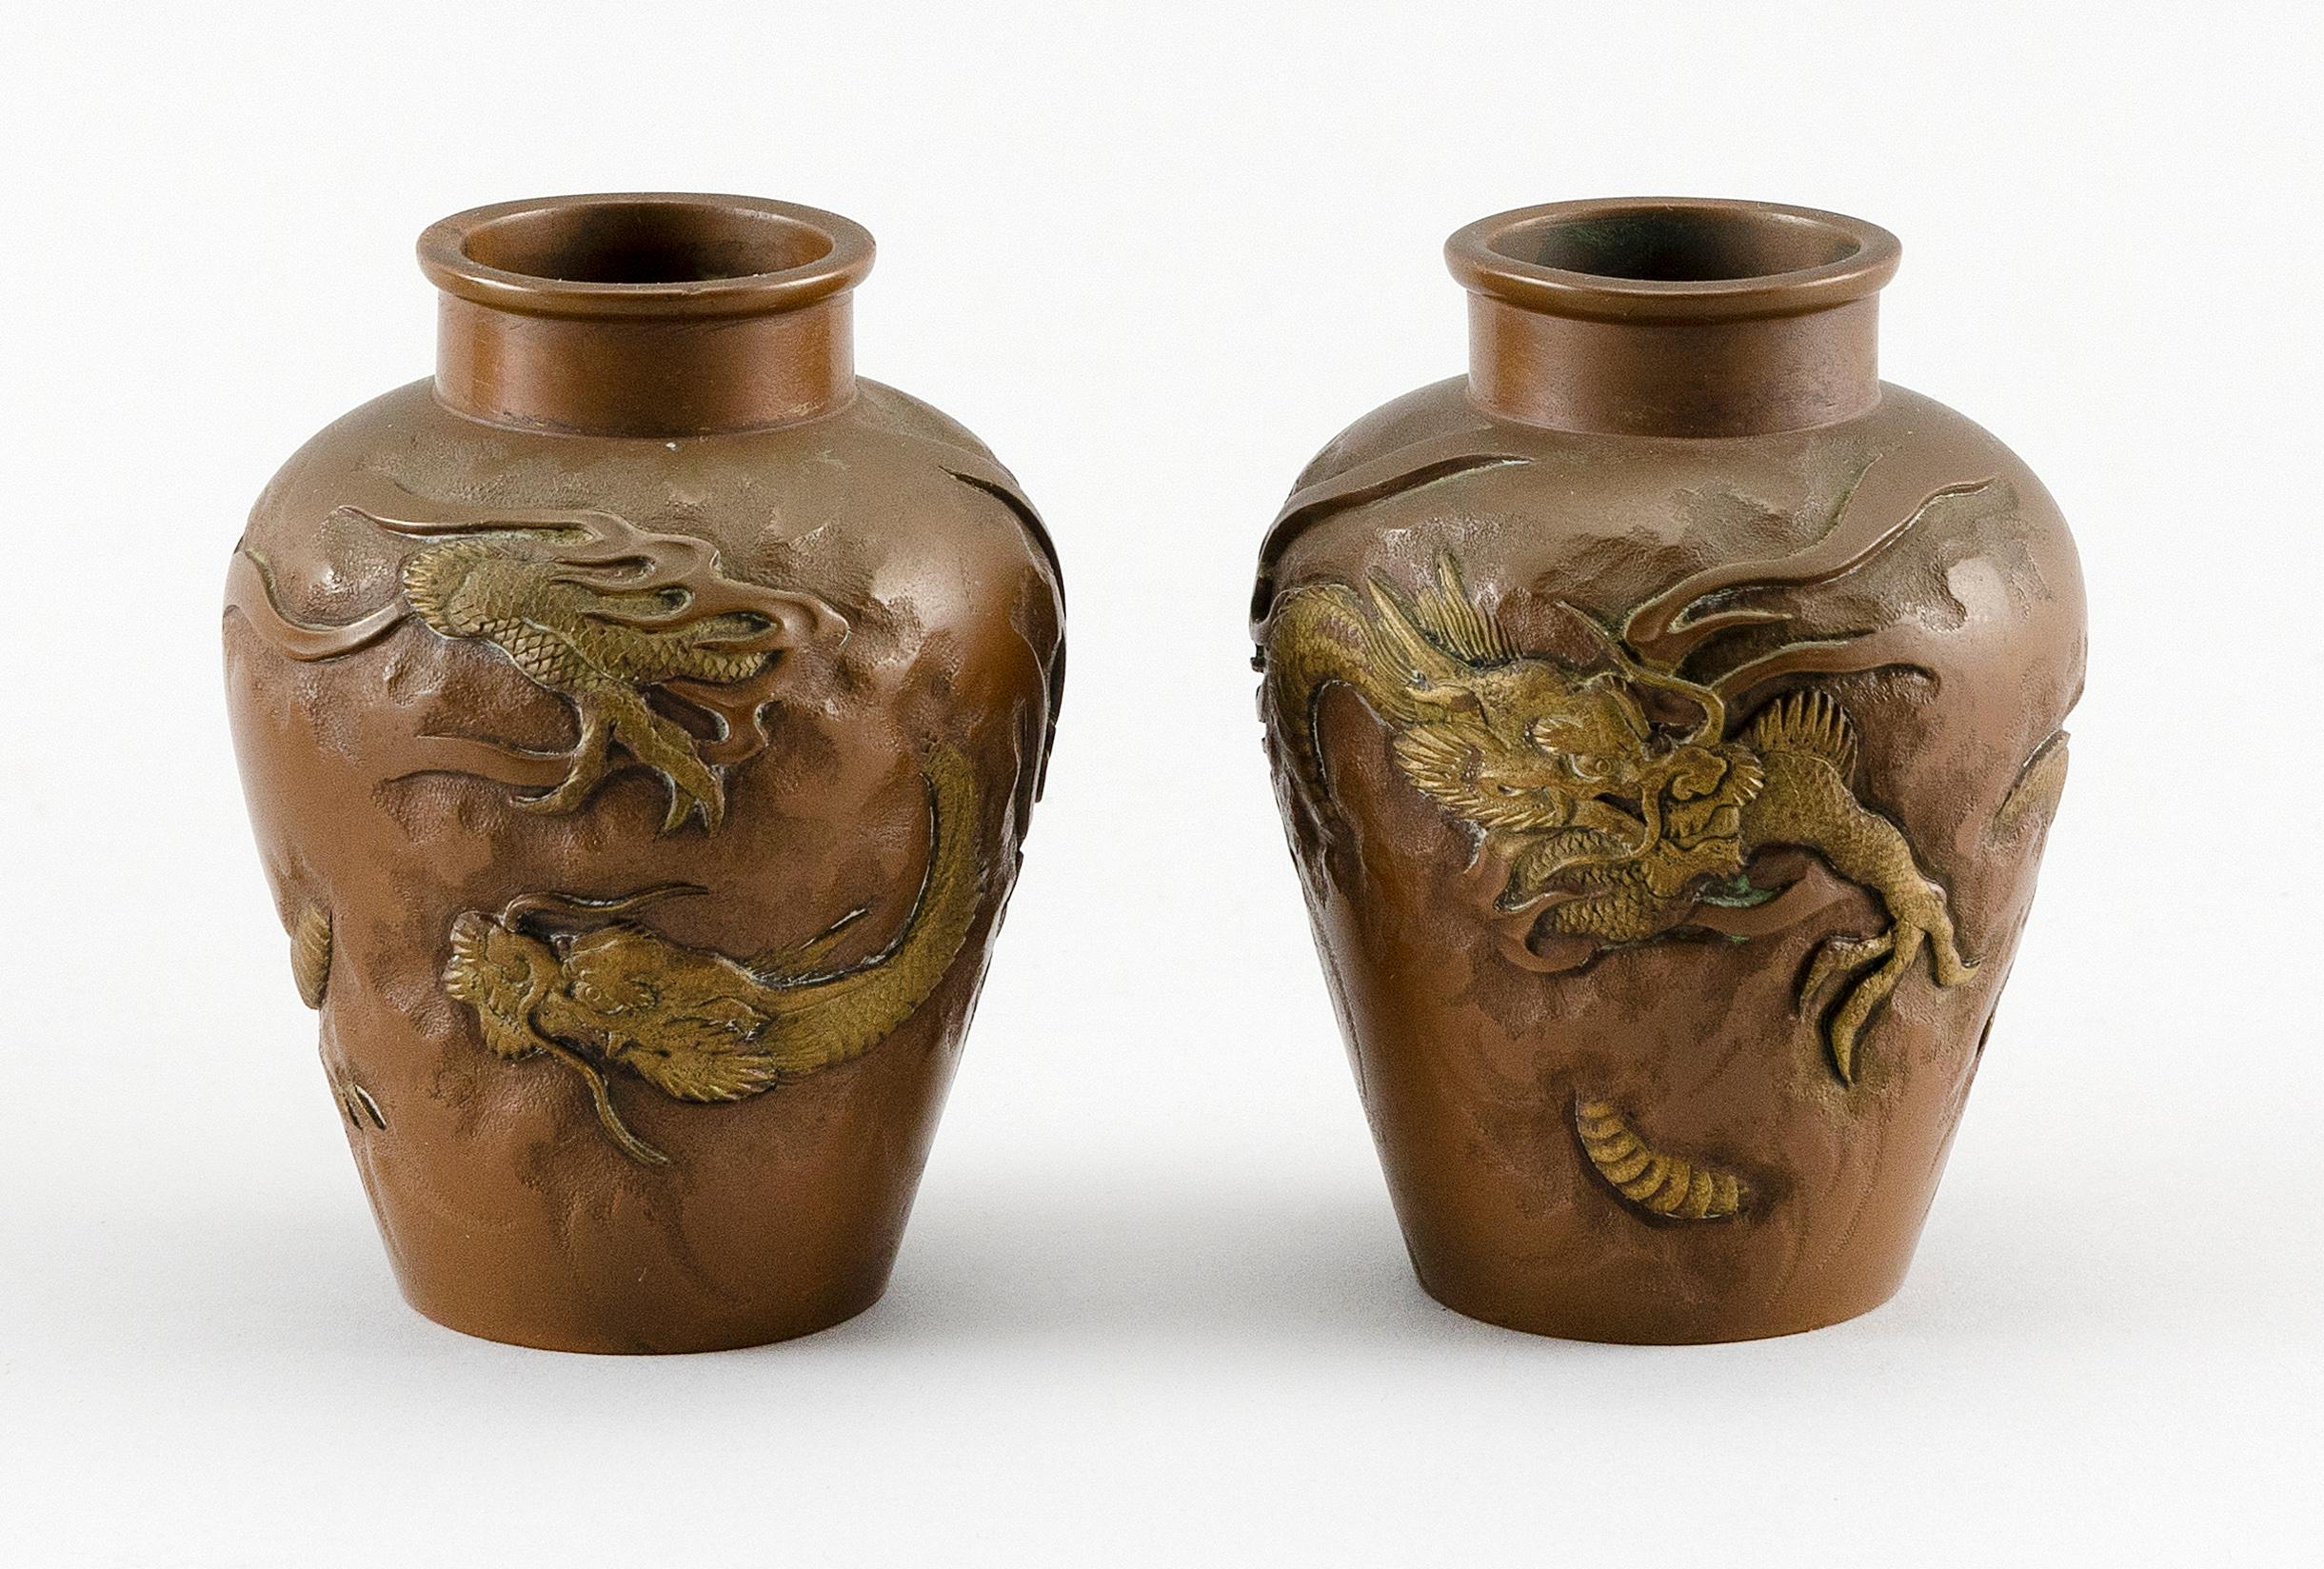 """PAIR OF JAPANESE MINIATURE BRONZE URNS Balustroid, with gilded dragons piercing the surface. Unmarked. Heights 3""""."""